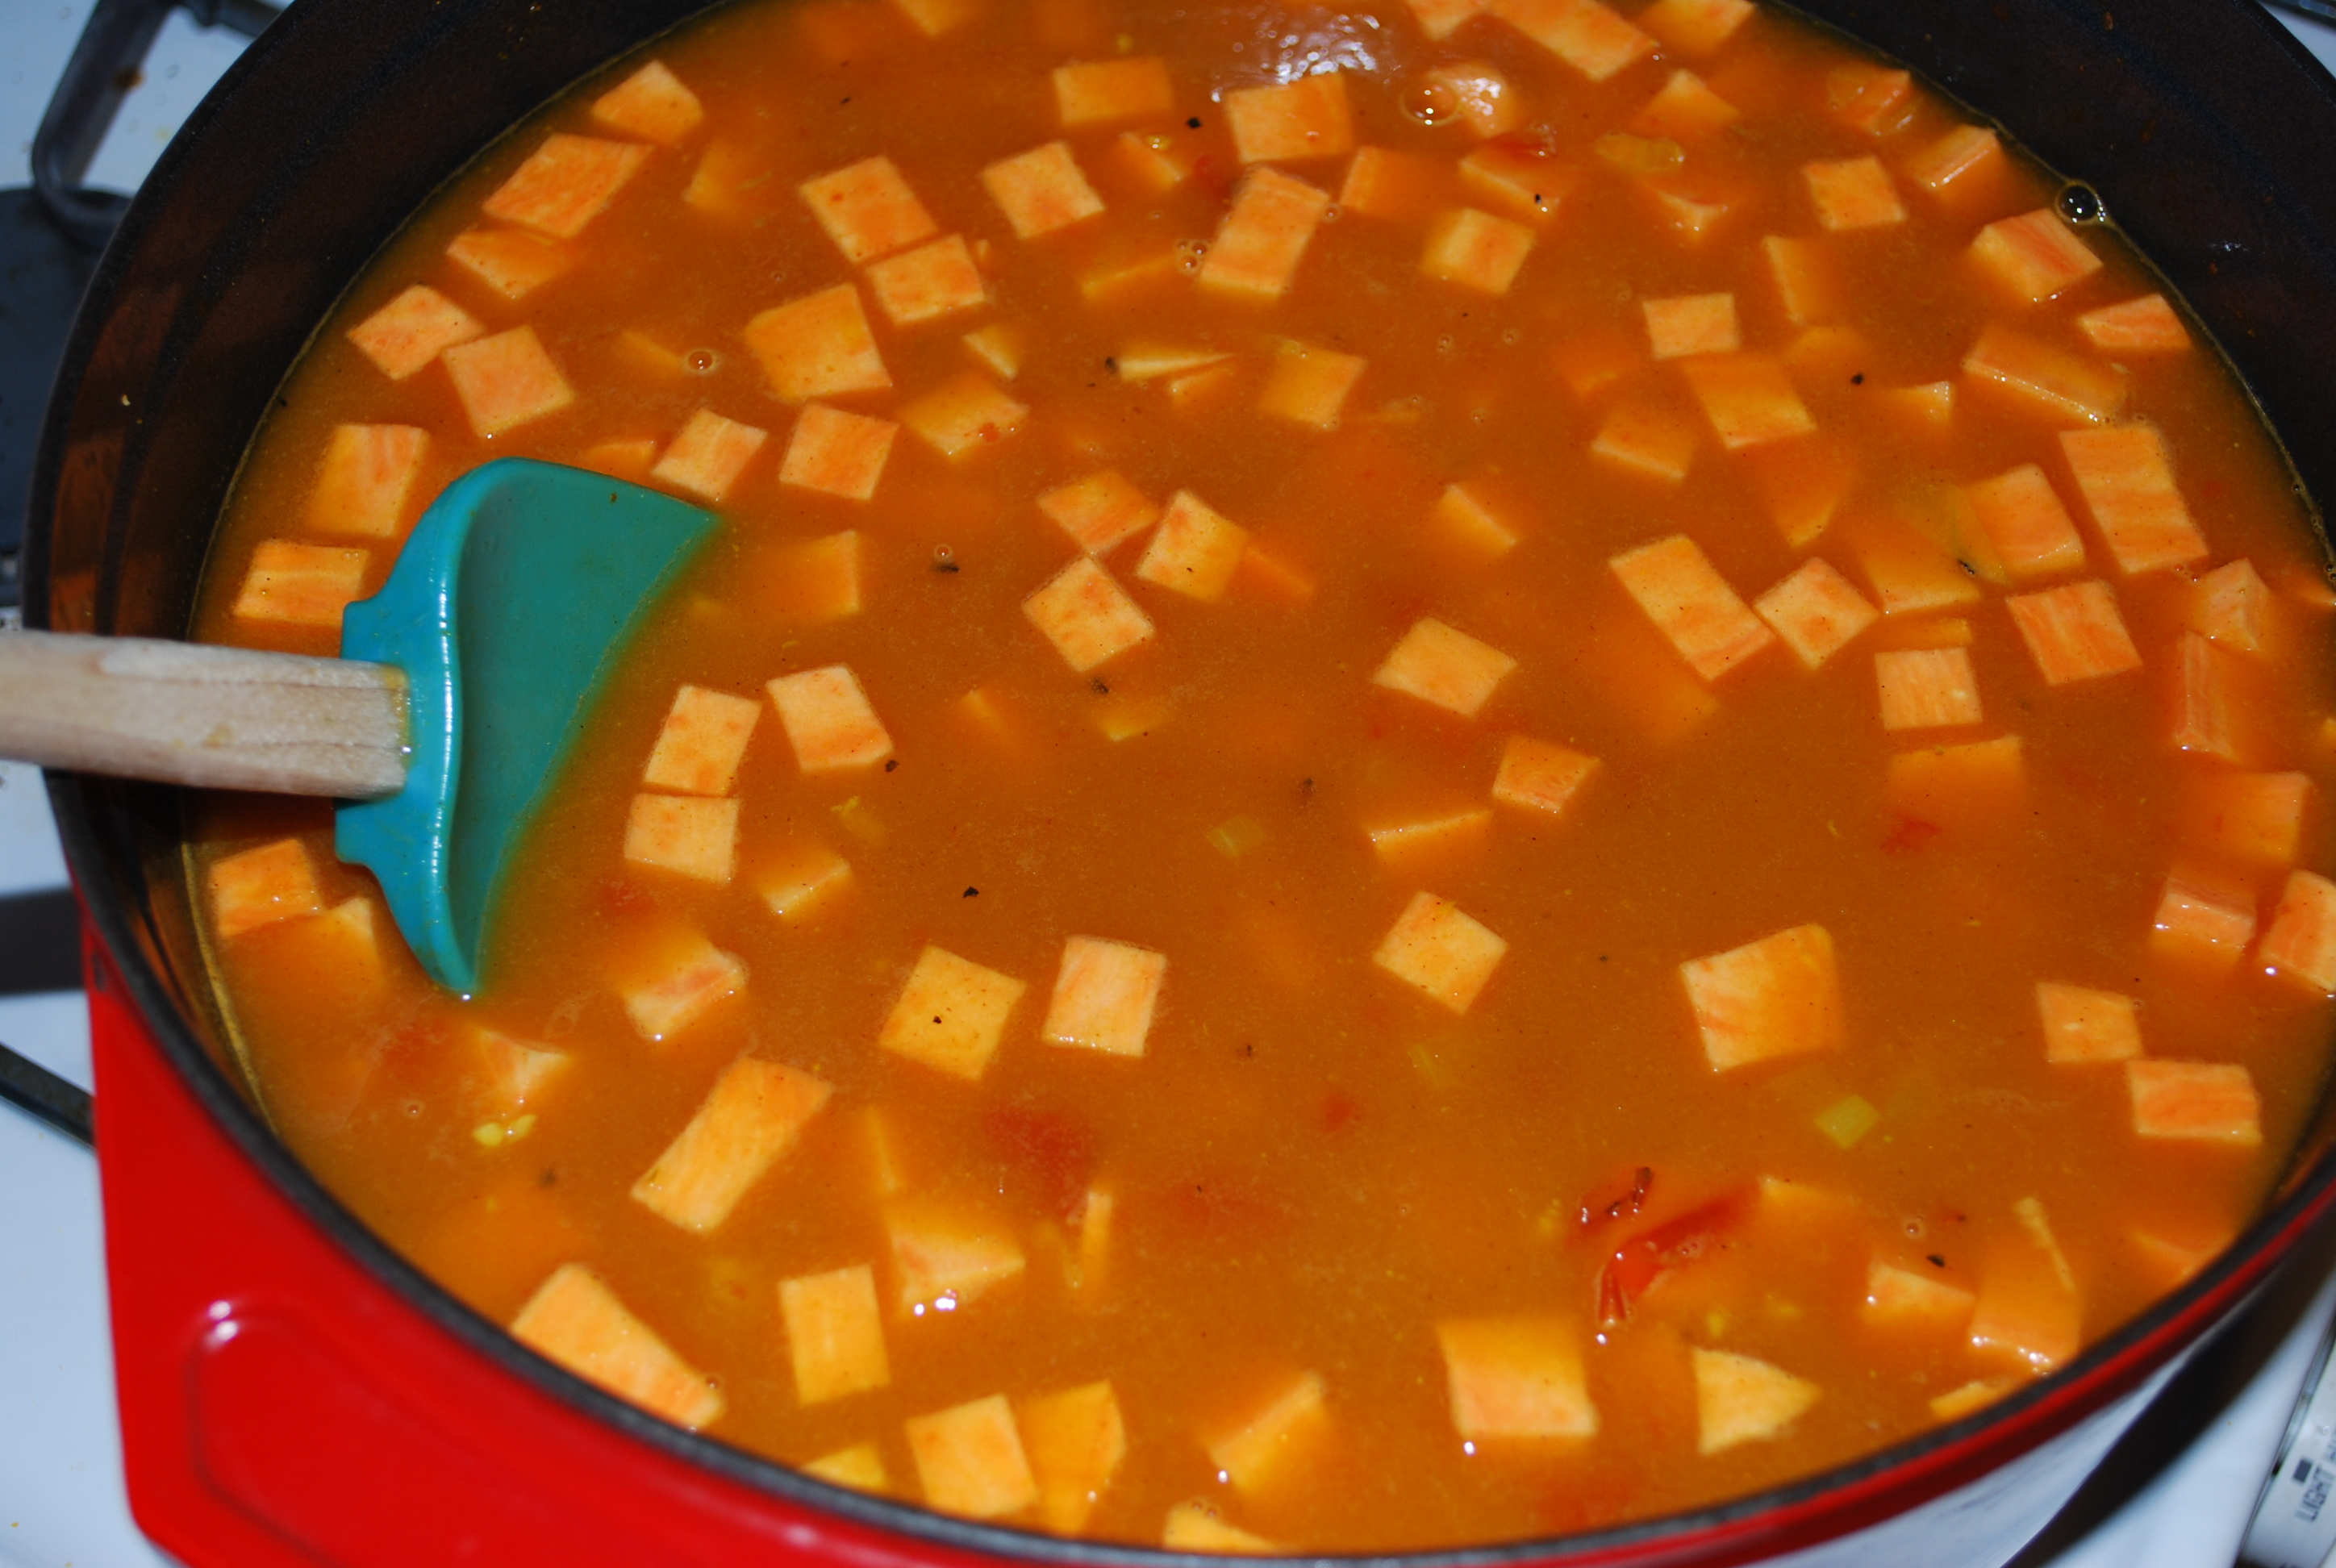 Add broth/water, lentils and sweet potatoes. Bring to a boil, reduce to low and cover. Cook for about 20-25 minutes or until potatoes and lentils are soft.